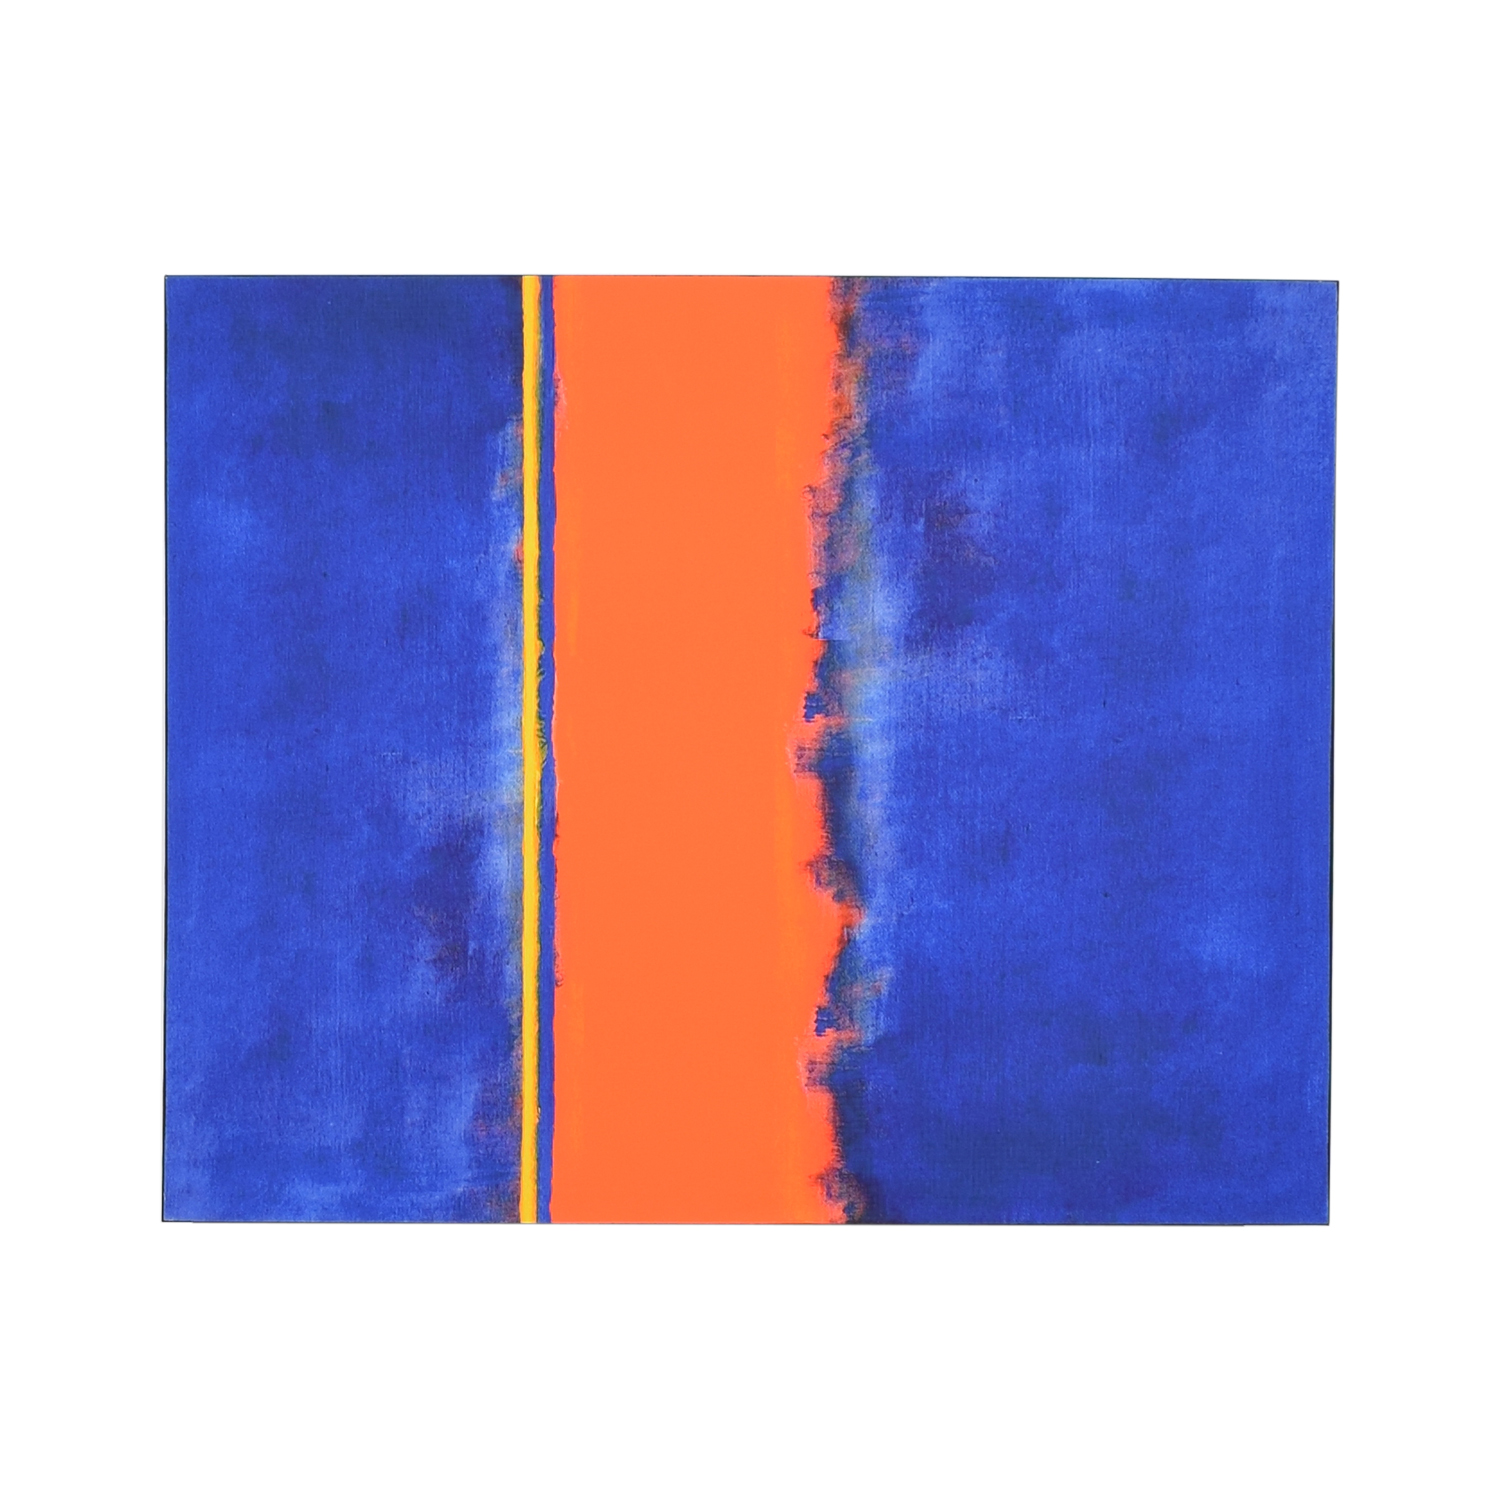 Vibrant Blue and Orange Painting price